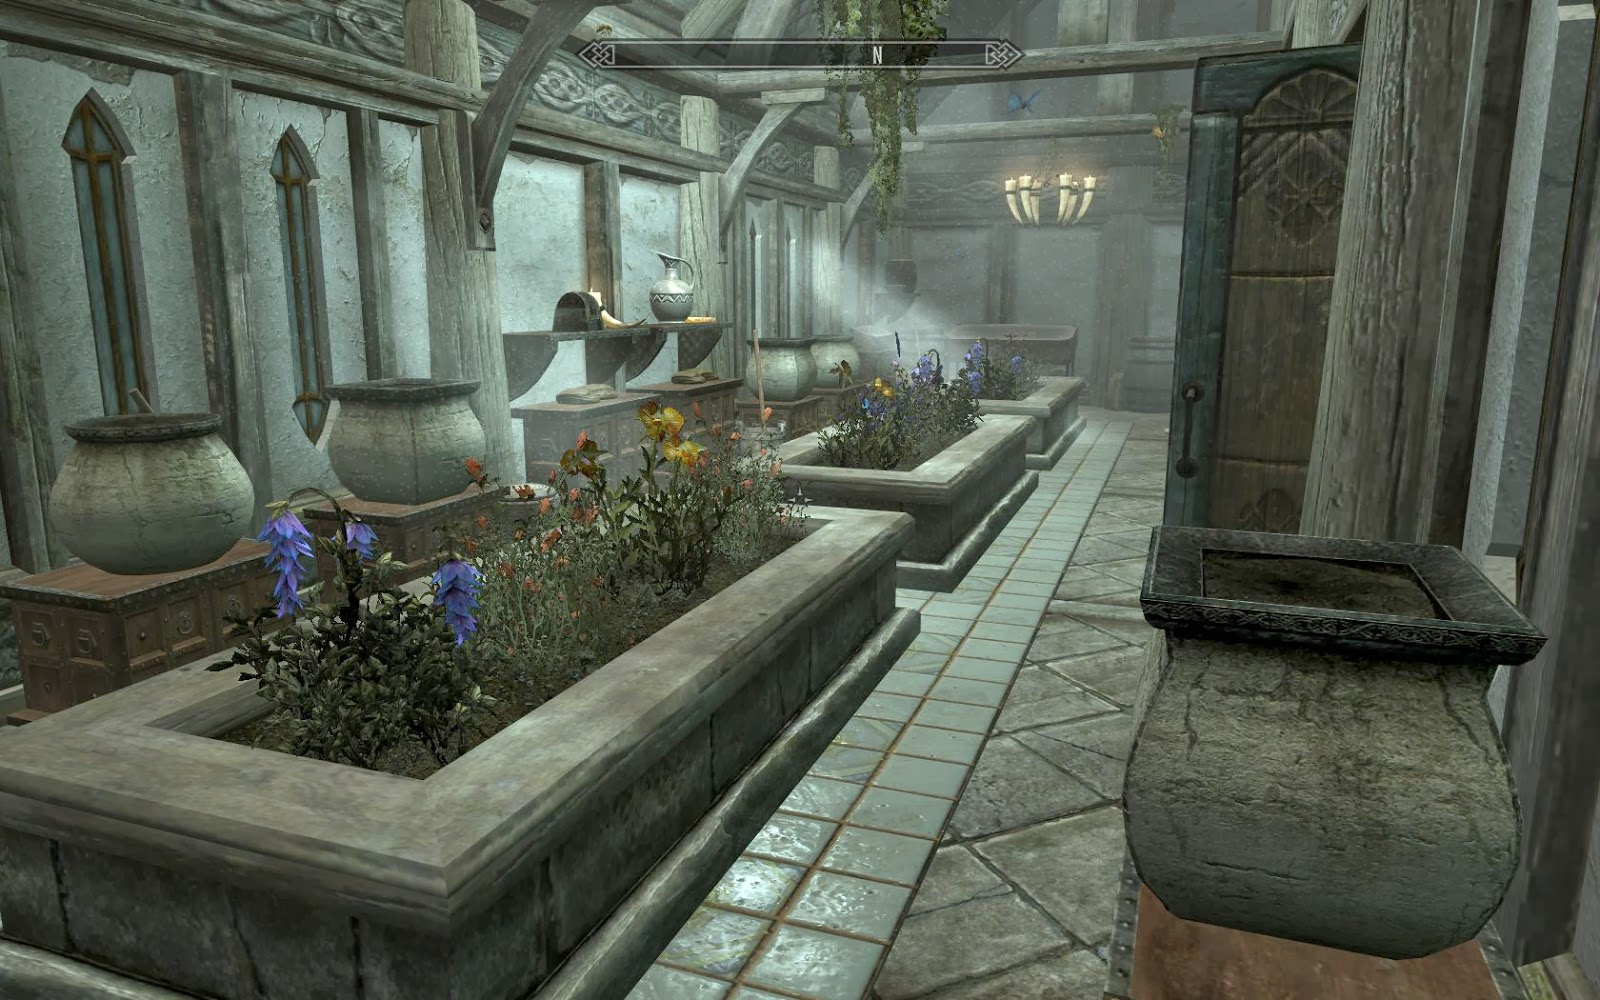 The greenhouseJD s Gaming Blog  The Important Pieces of Paper  Skyrim  Came back  . Hearthfire Lighting Fix. Home Design Ideas